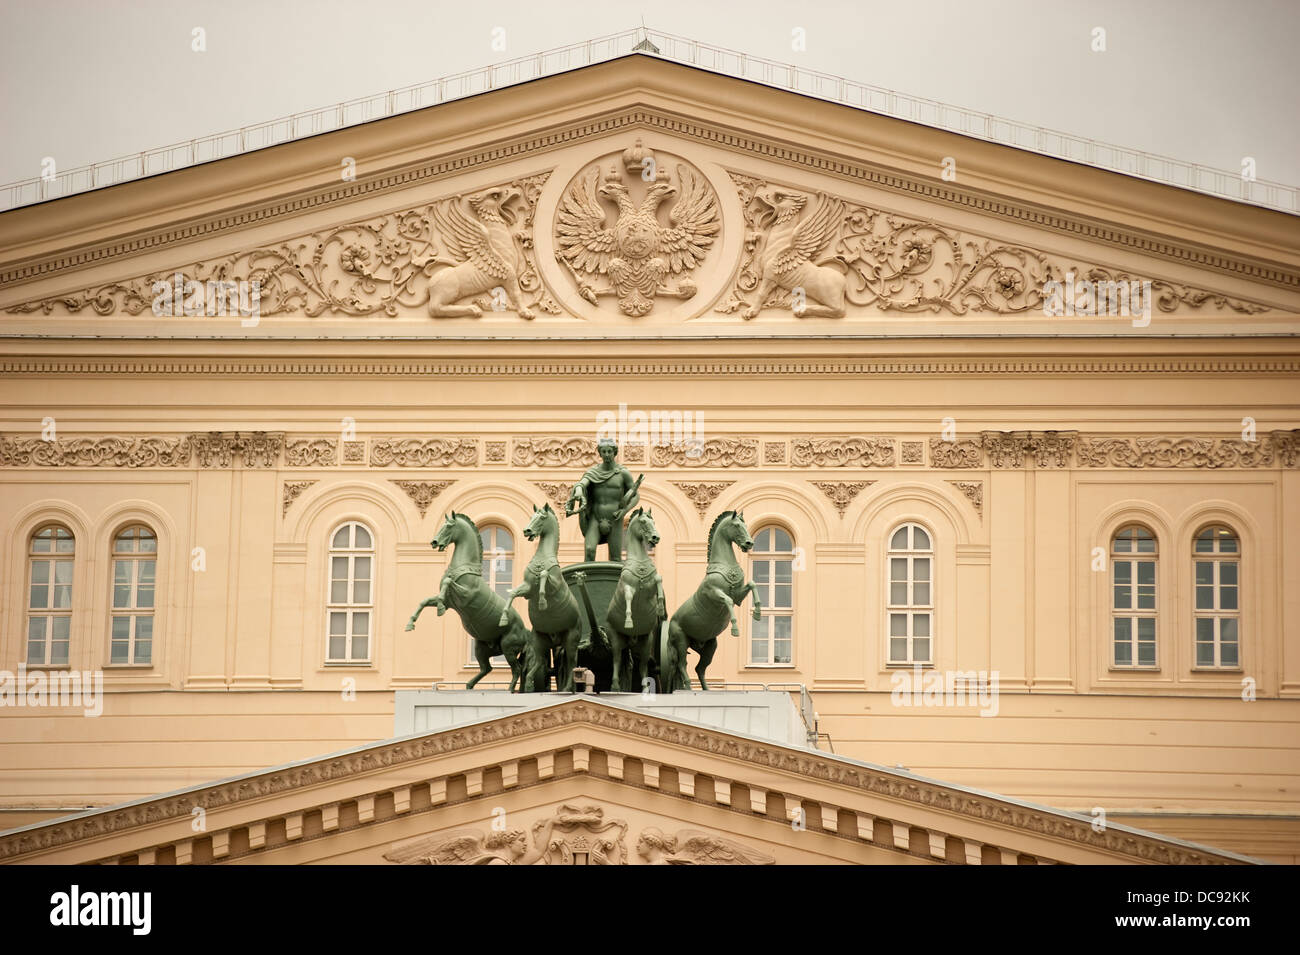 Historical Bolshoi Theater Moscow Russia - Stock Image